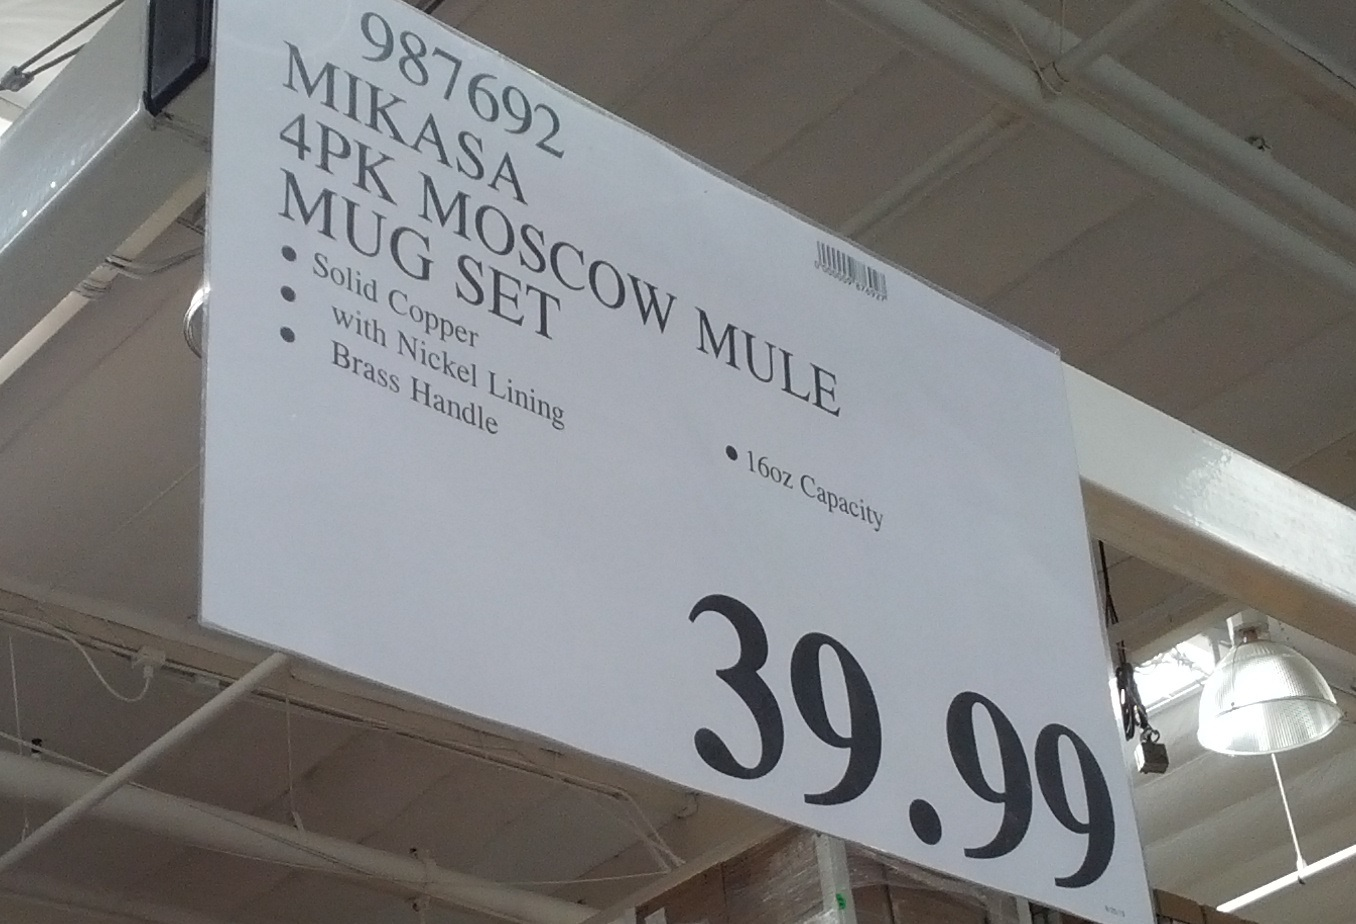 Deal For Mikasa Moscow Mule Mugs At Costco